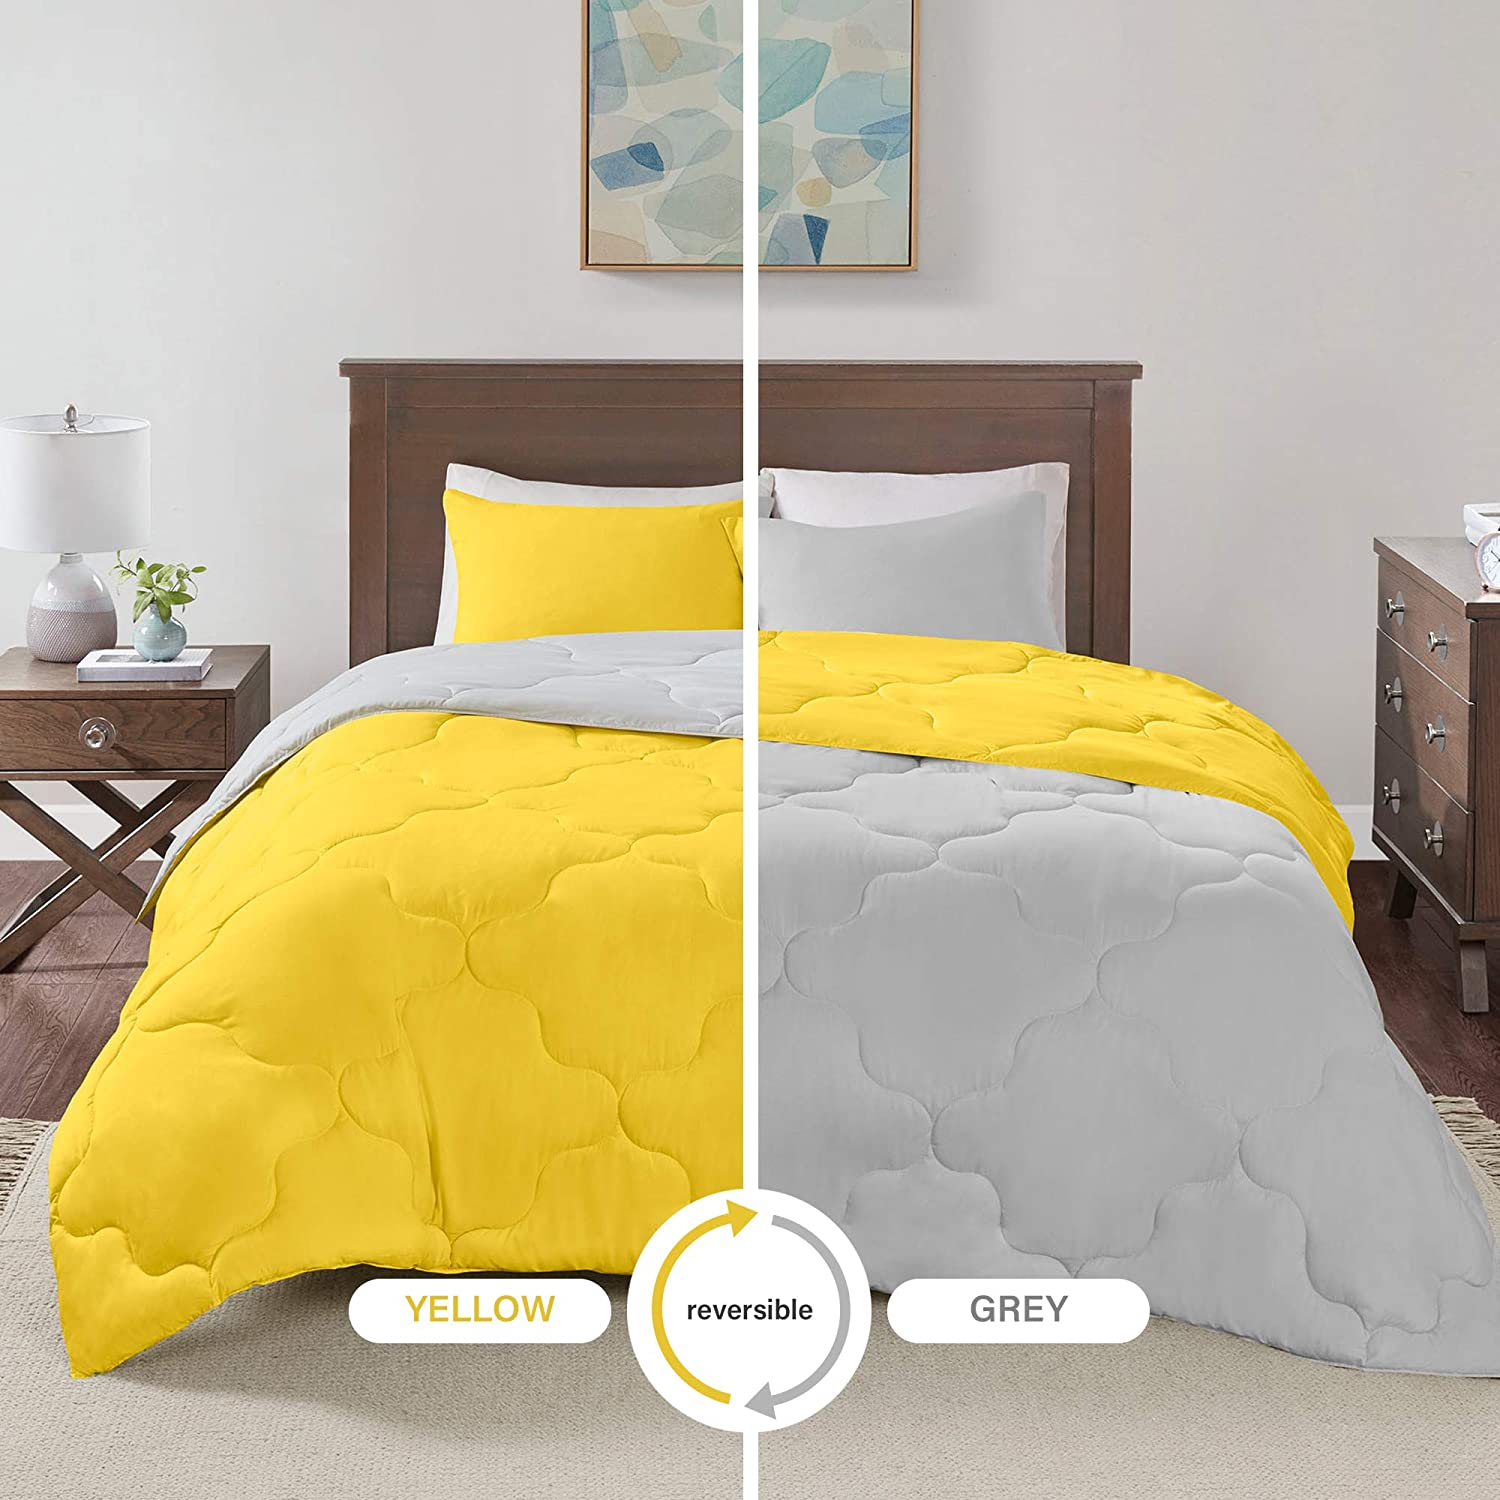 Comfort Spaces Vixie 2 Piece Comforter Set All Season Reversible Goose Down Alternative Stitched Geometrical Pattern Bedding, Twin/Twin XL, Yellow/Grey